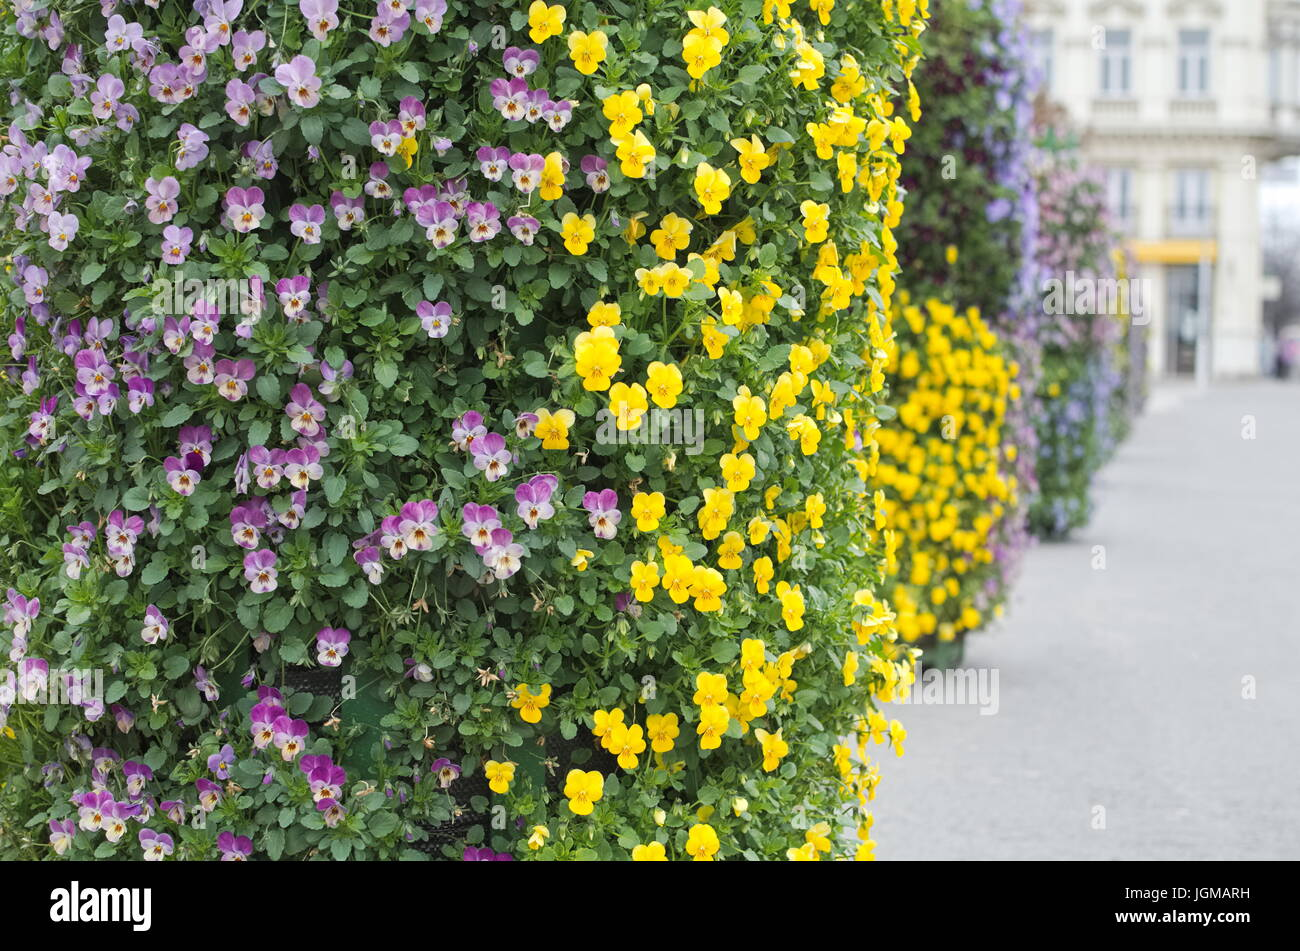 Small purple flowers with yellow centre stock photos small purple bush of small purple and yellow street flowers stock image mightylinksfo